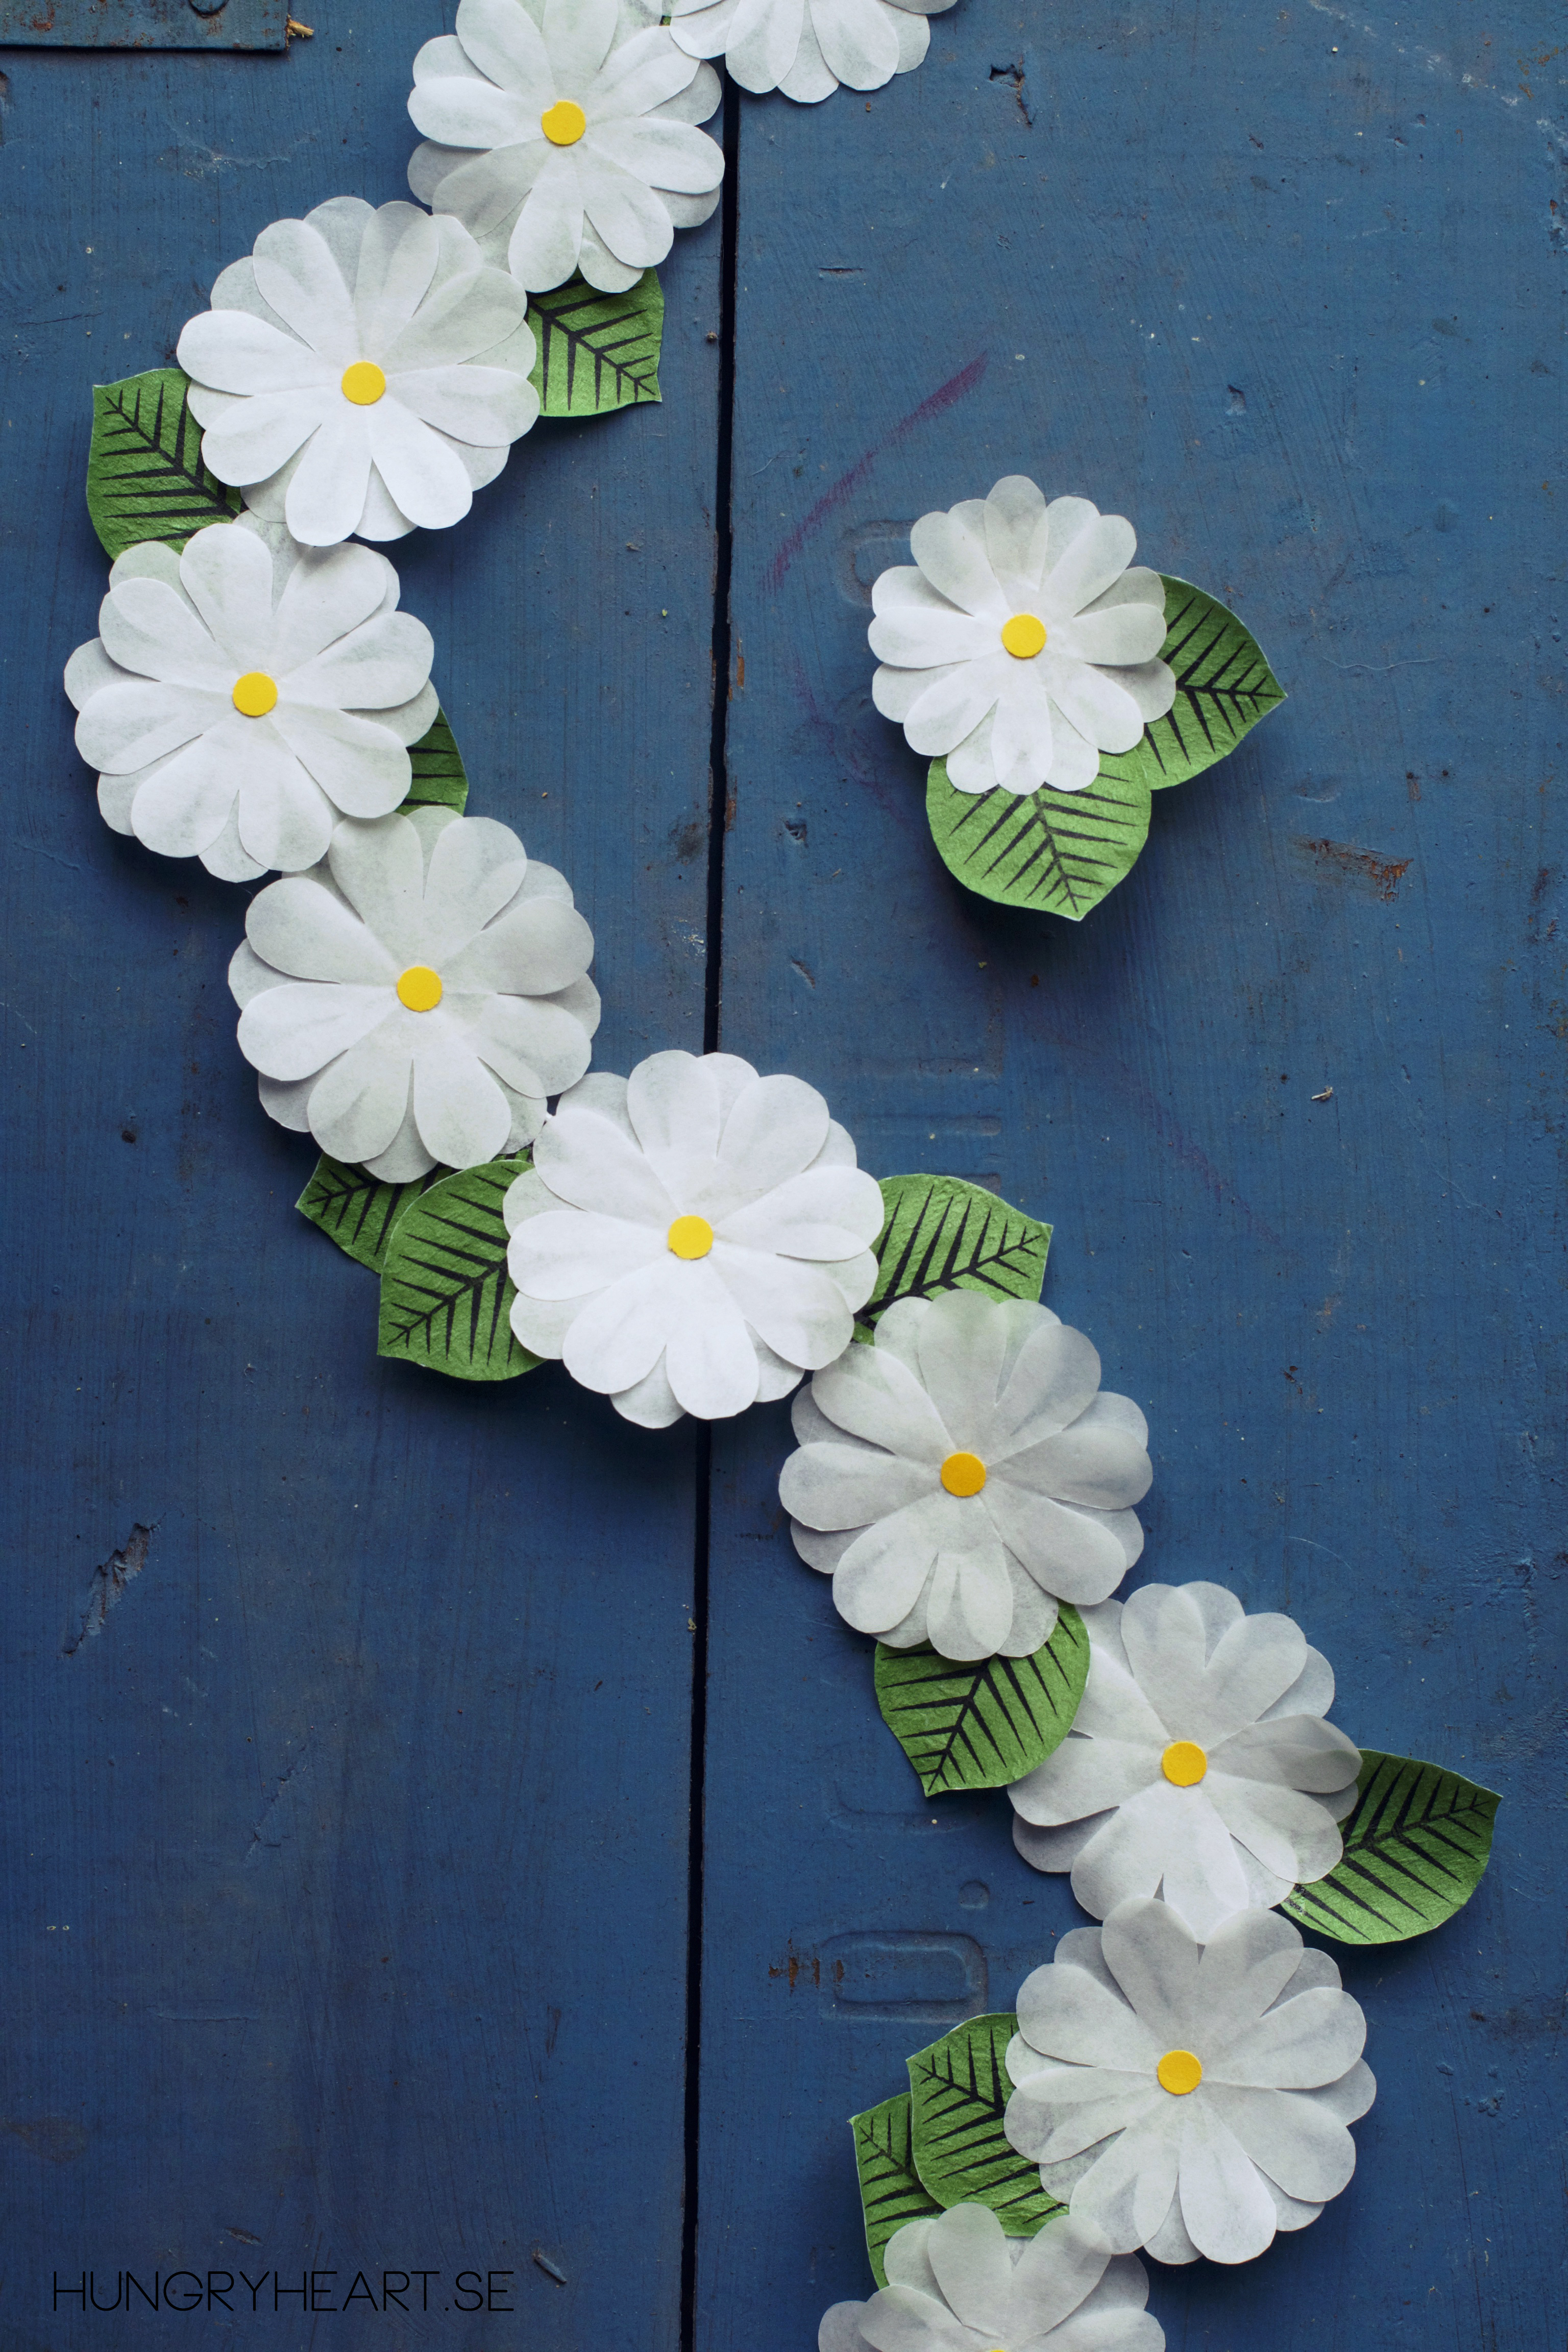 Diy cupcake liner flower crown tutorial hungry heart diy cupcake liner flower garland tutorial hungryheart izmirmasajfo Image collections